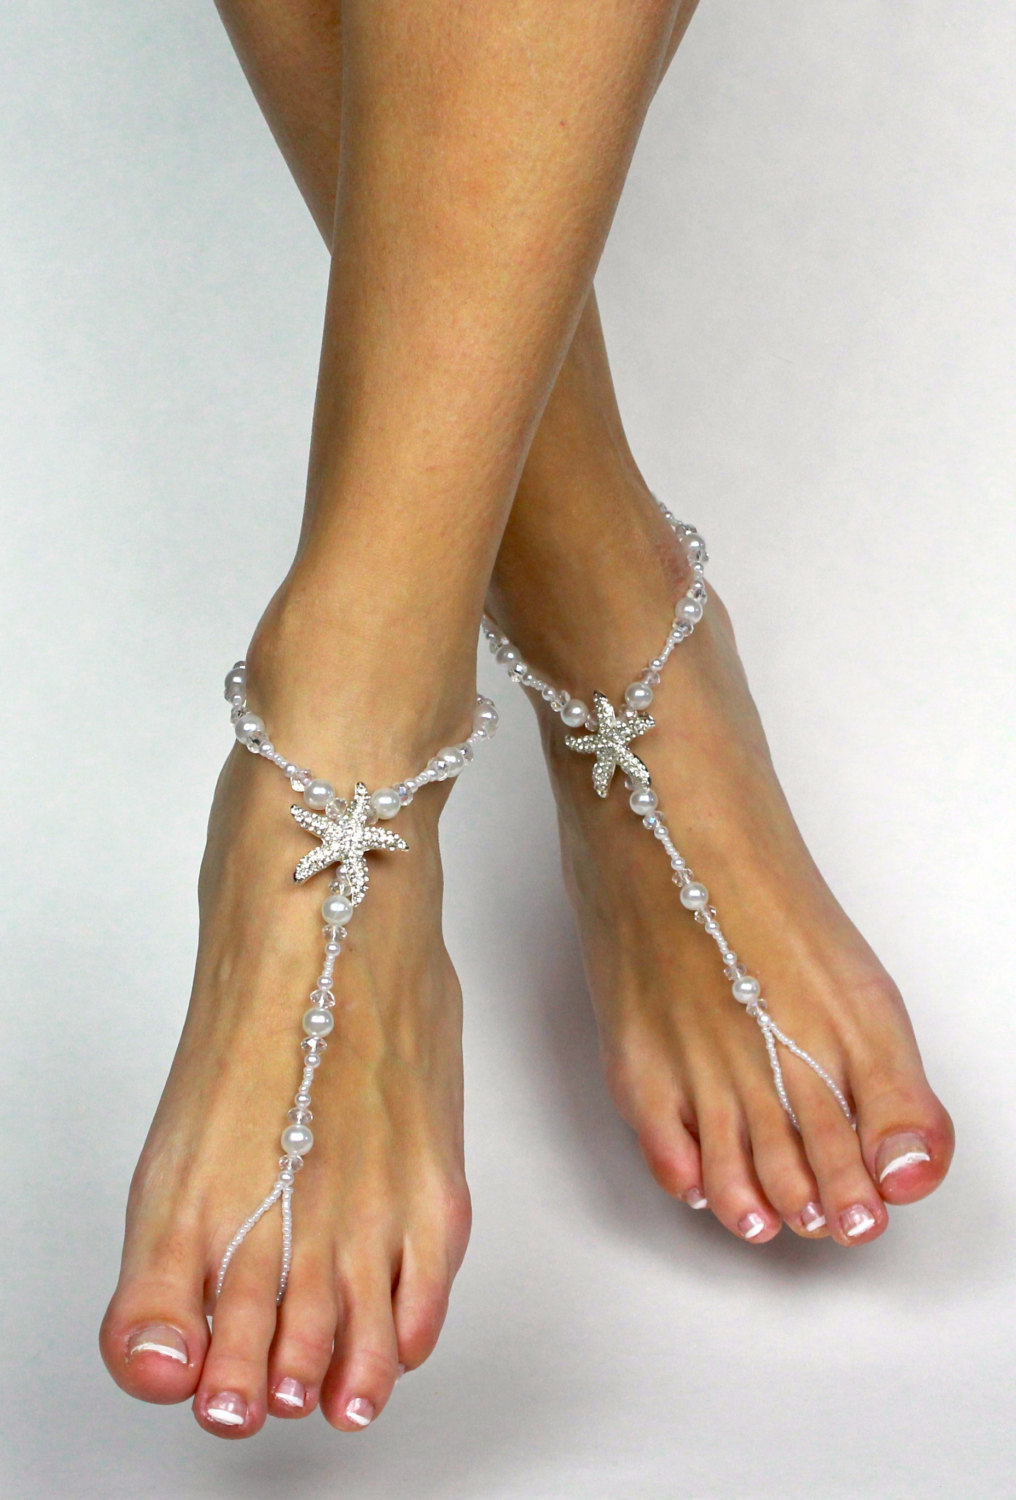 b8f5b947bac2 Starfish Barefoot Sandals for Bride Beach Wedding Barefoot Sandals Foot  Jewelry Foot Thong Bare Foot Sandals